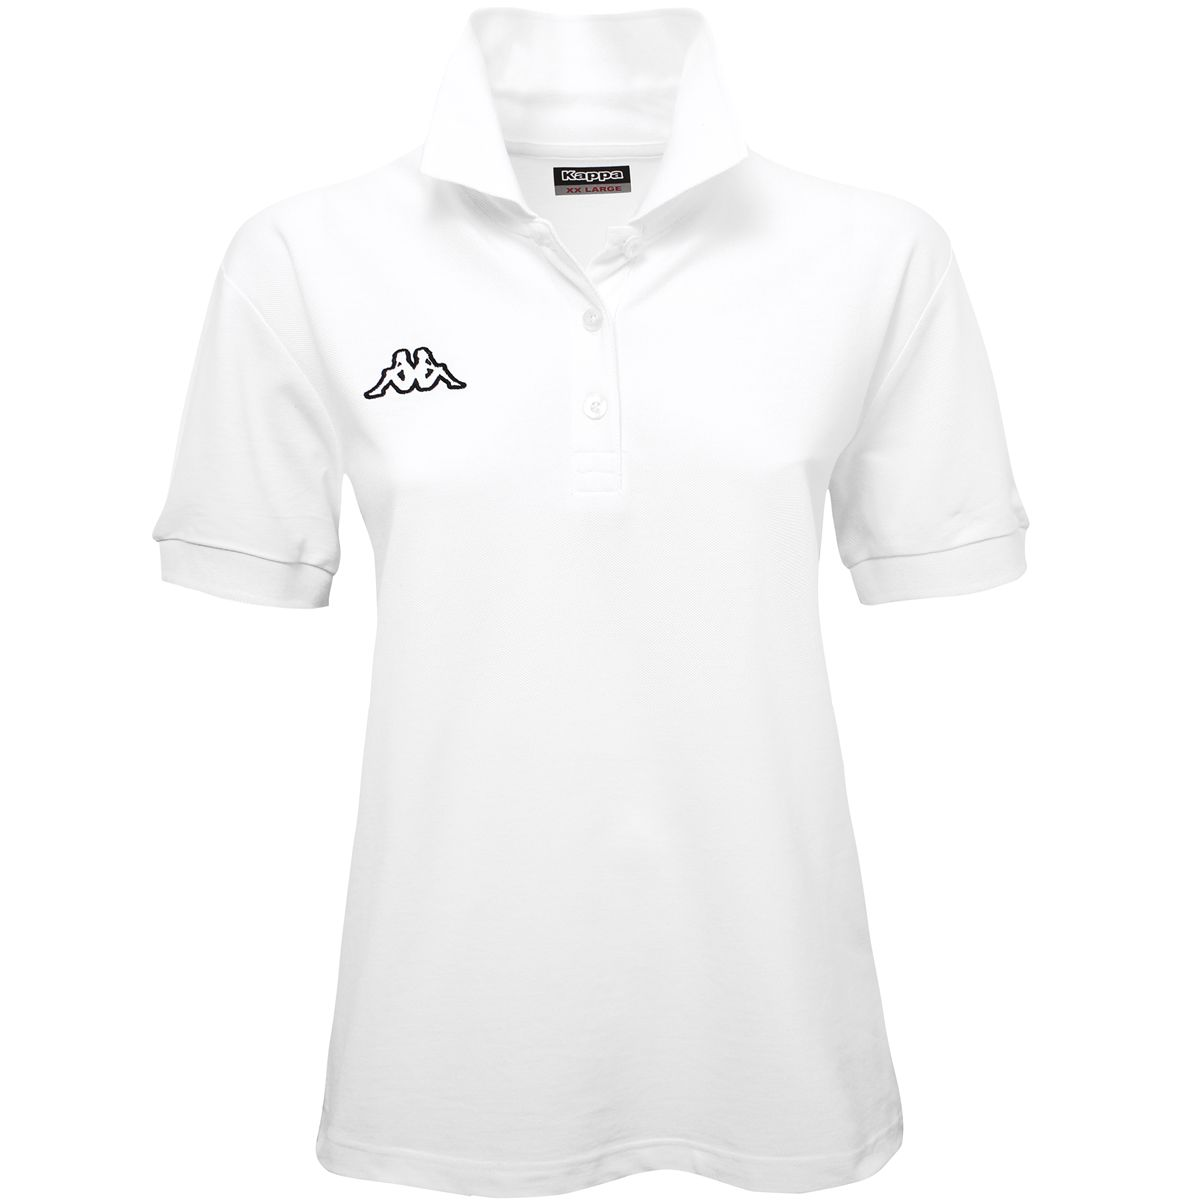 Kappa POLO SHIRTS POLO SHARAS WSS Woman Polo